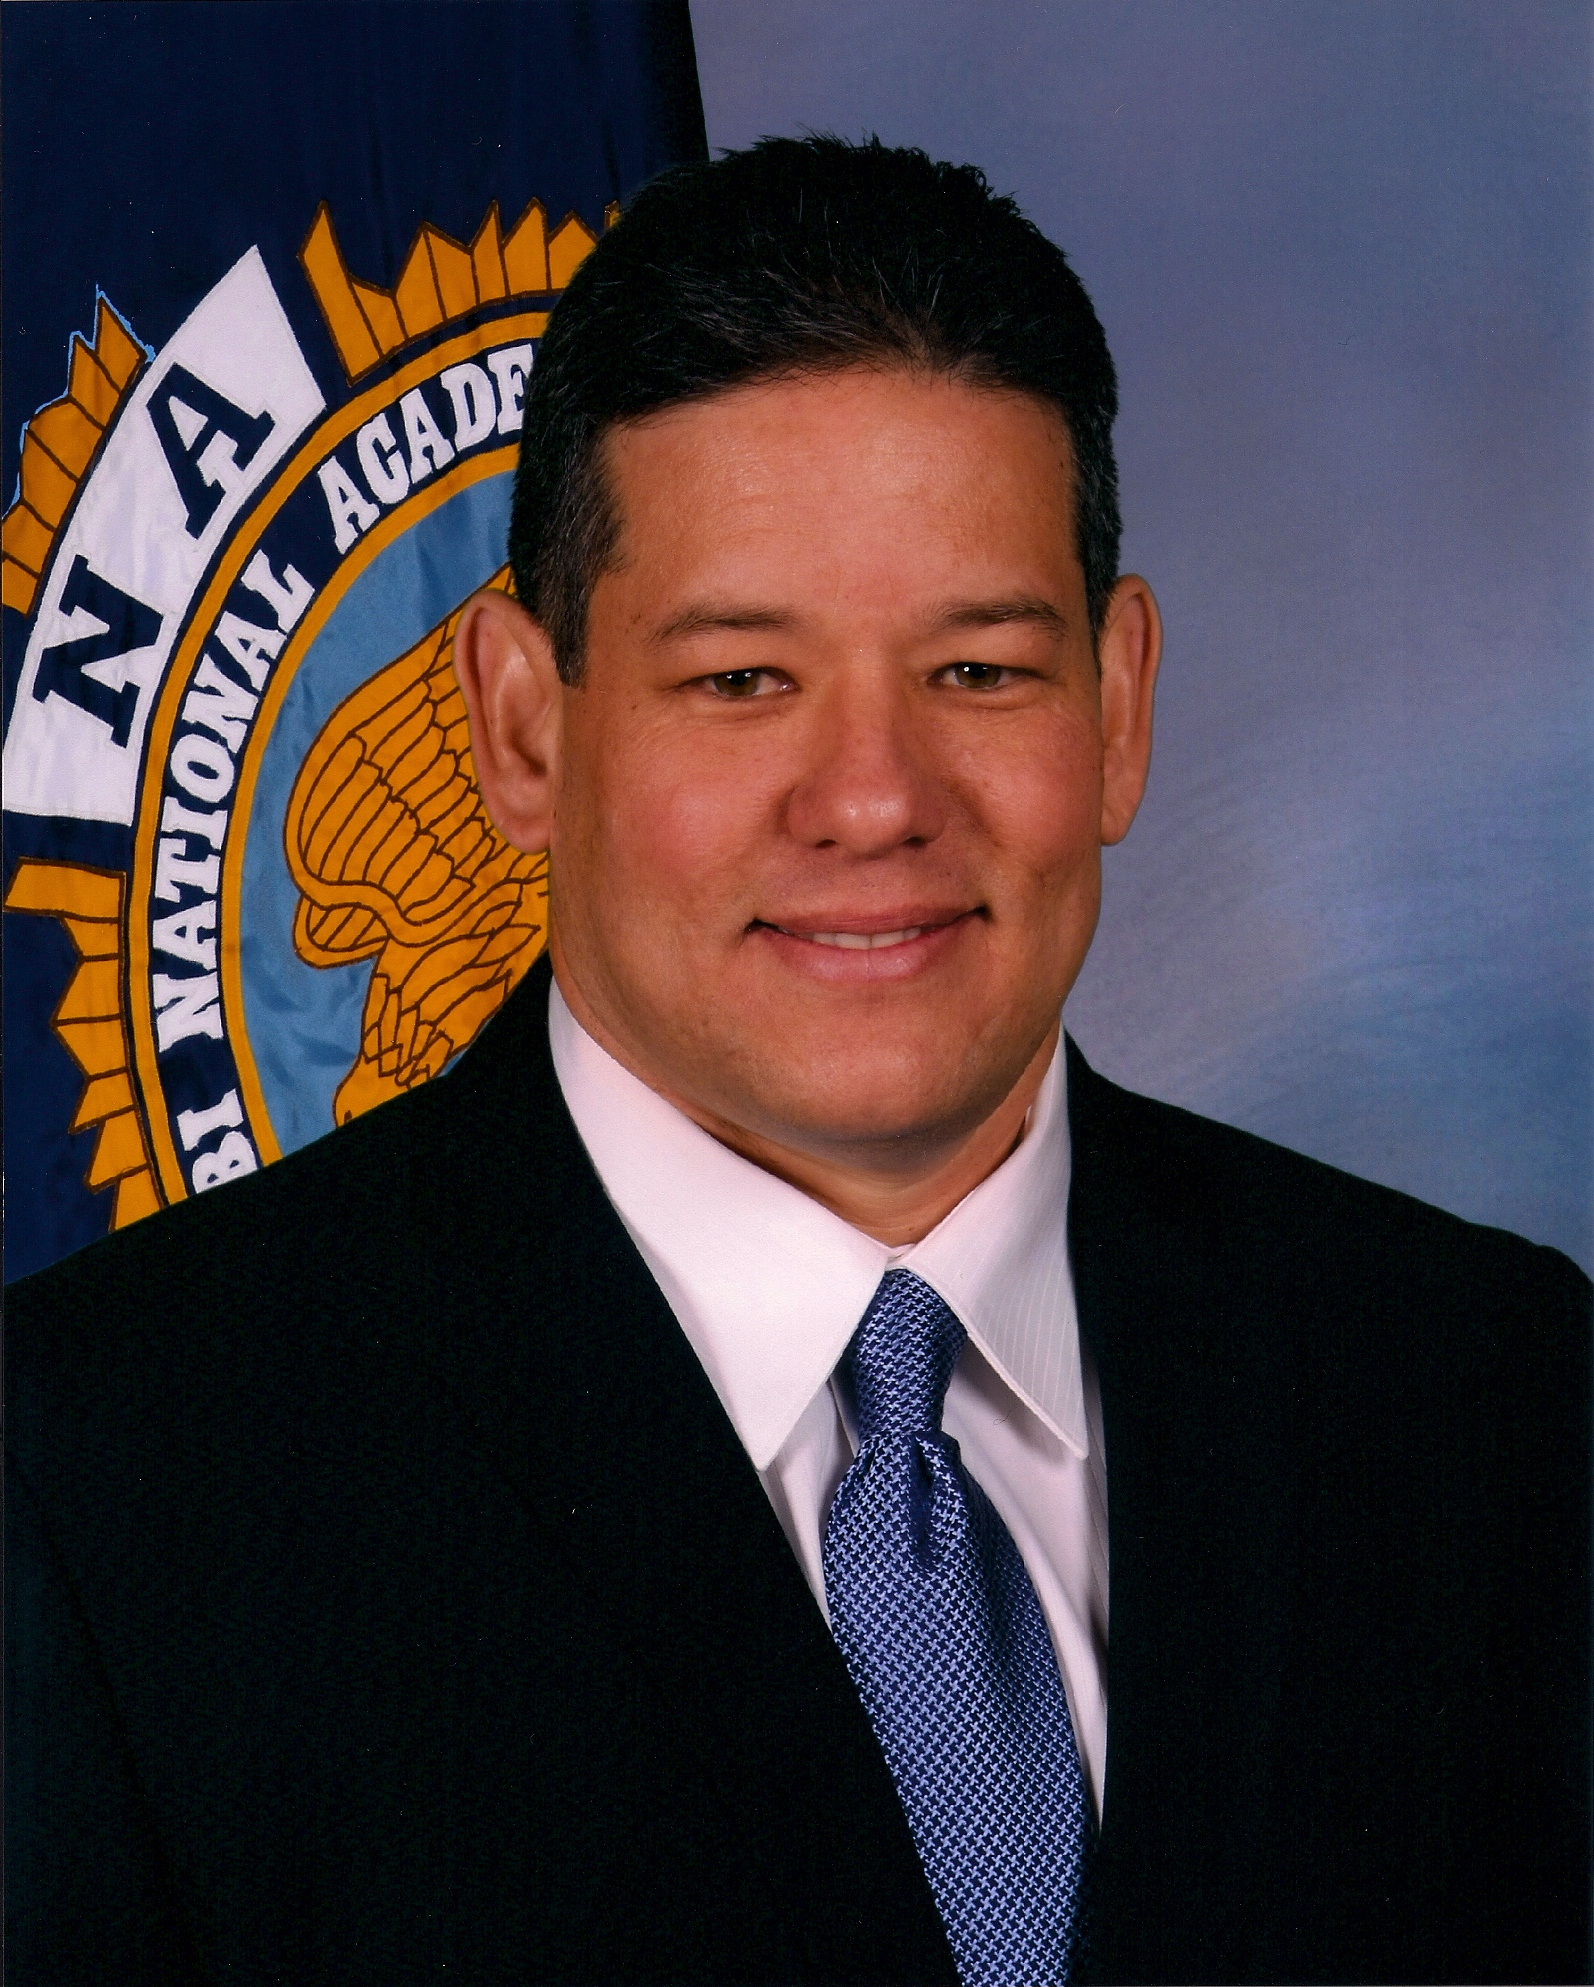 Deputy Chief of Police Michael M. Contrades graduated from the Federal Bureau of Investigation (FBI) National Academy in Quantico, Virginia.